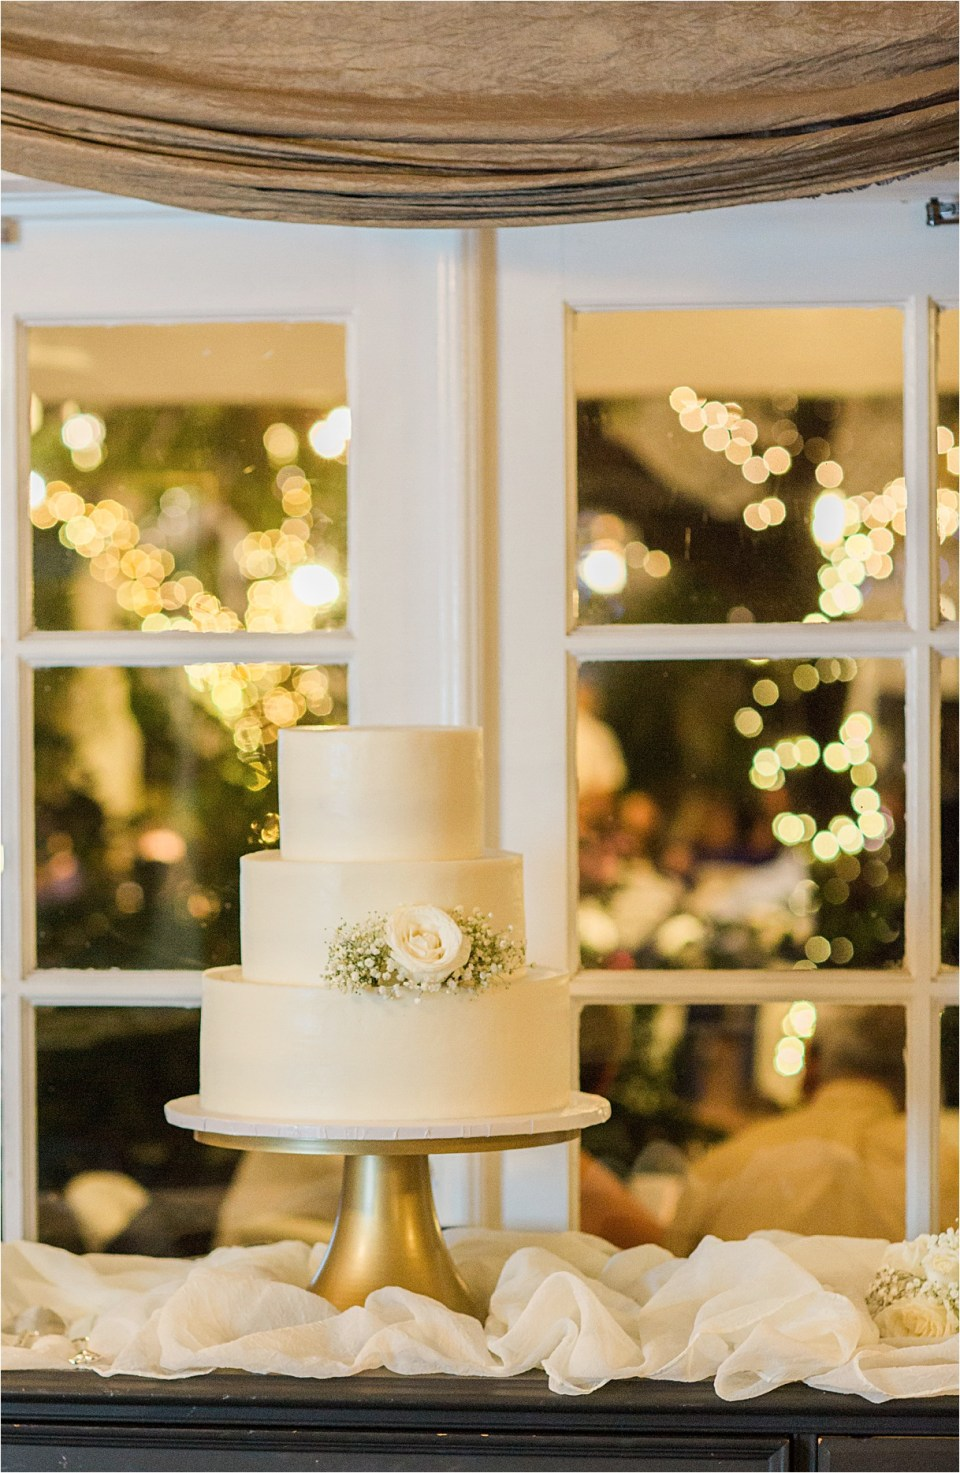 Wedding cake by Ambrosia Cakes at Z Mansion in Tucson, Arizona.